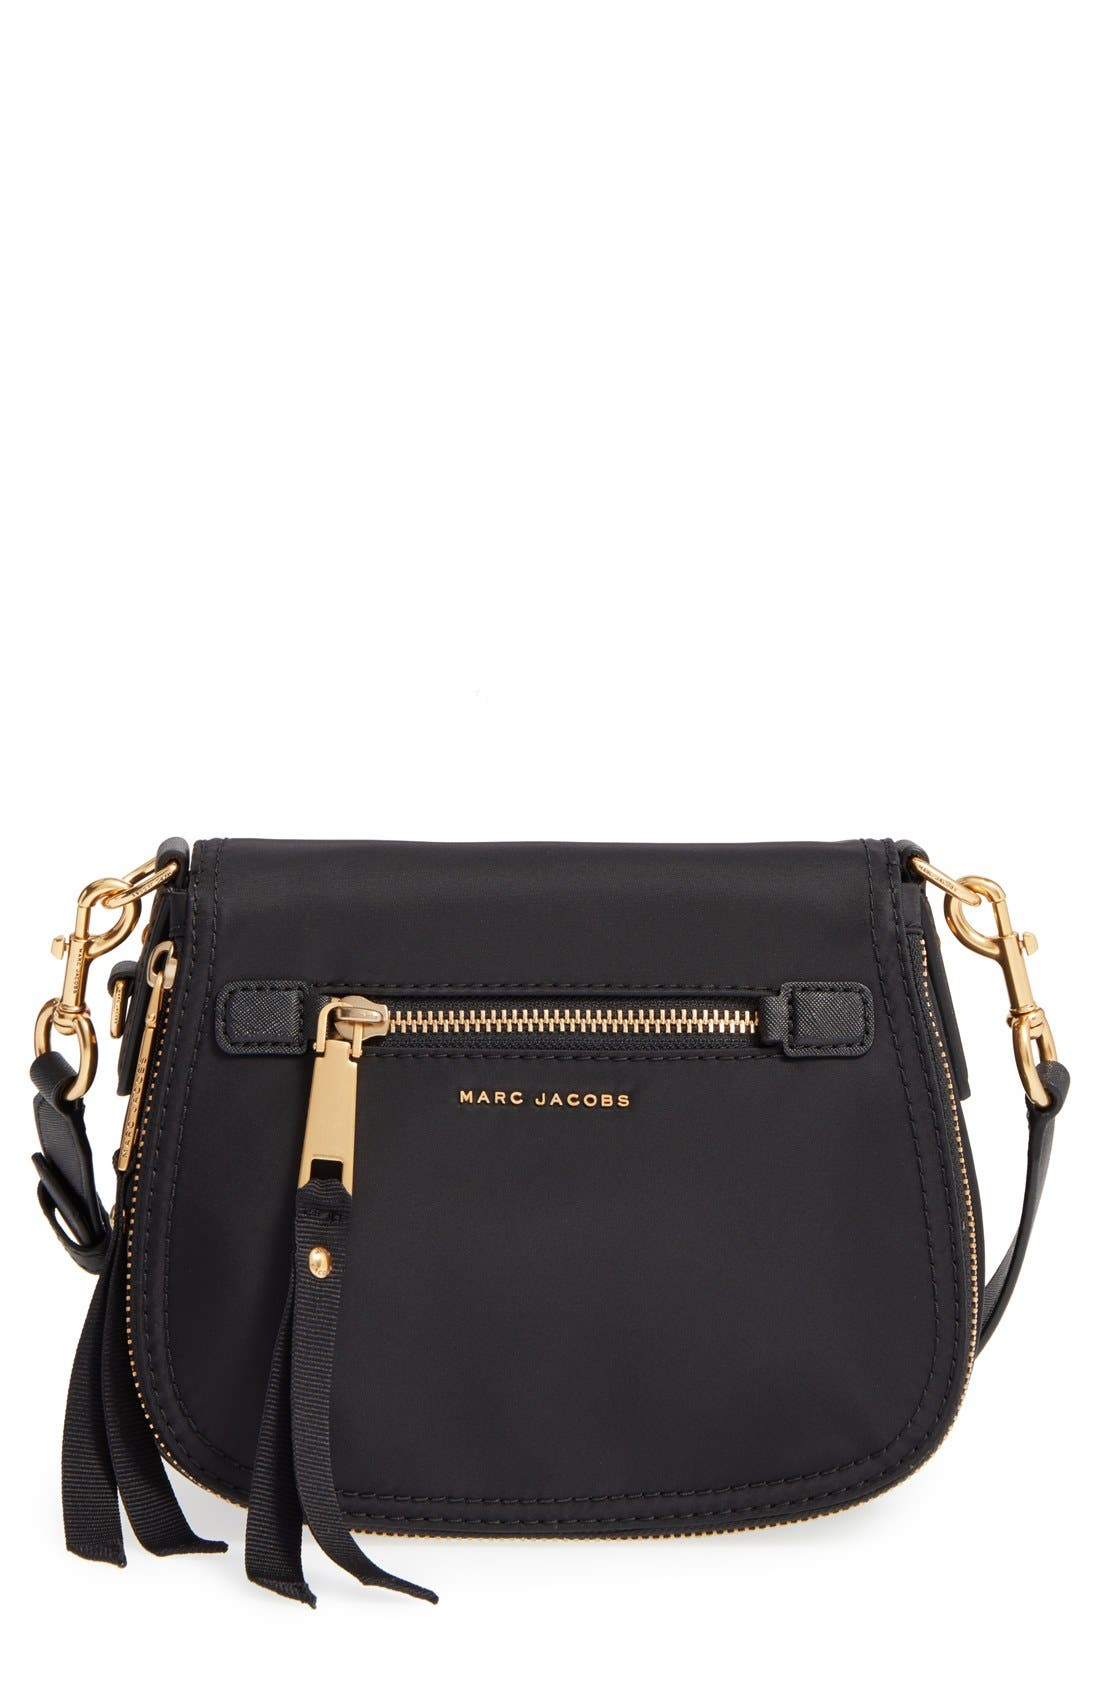 MARC JACOBS Trooper - Small Nomad Nylon Crossbody Bag